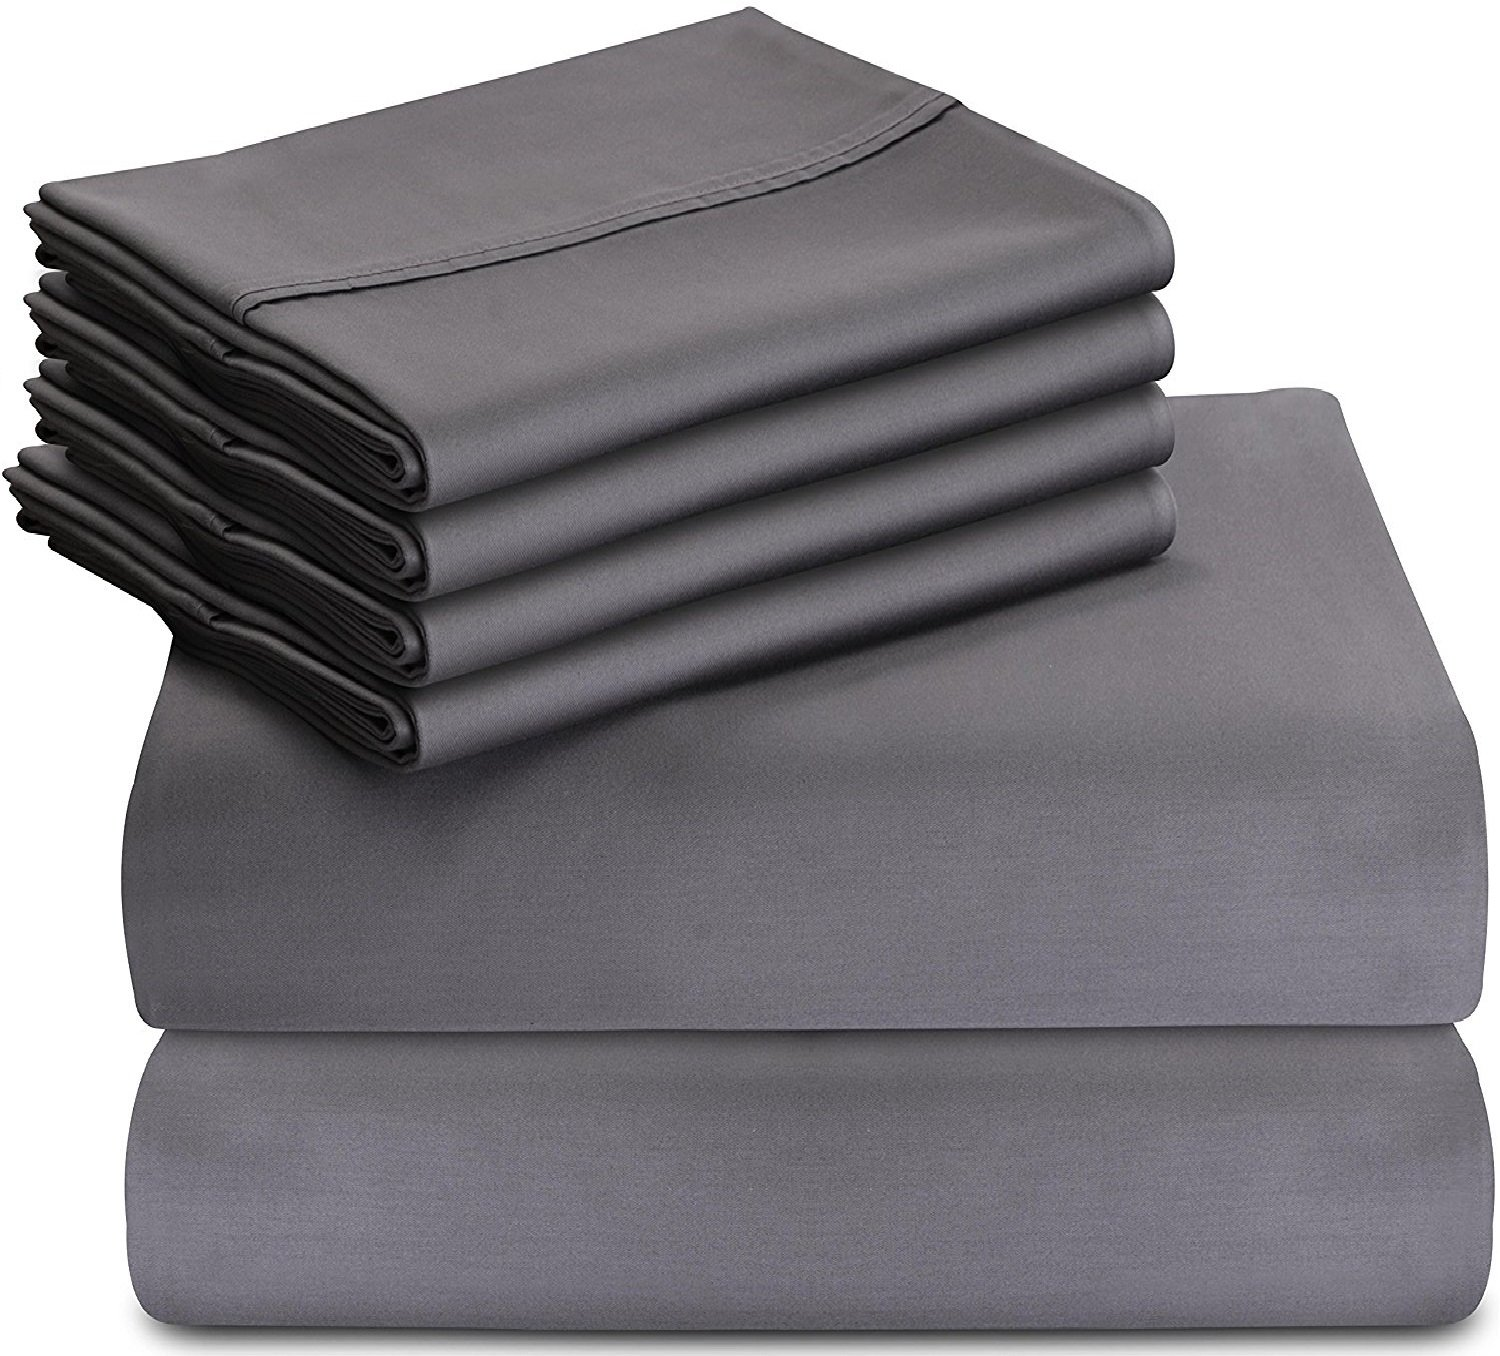 Utopia Bedding 6-Piece Bed Sheet Set (Queen - Grey) with 4 Pillowcases - Soft Brushed Microfiber Wrinkle, Fade and Stain Resistant Sheet Set - Includes 1 flat sheet measuring 90 by 102 inches with a 4 inches self-hem; 1 fitted sheet measuring 60 by 80 inches with a 16 inches box and 4 pillowcases measuring 20 by 30 inches each Brushed microfiber fabric makes the sheet set exceptionally soft Smooth and silky feel of the sheet is very cozy which keeps you cool during summers and warm during winters - sheet-sets, bedroom-sheets-comforters, bedroom - 81KMB e2XaL -